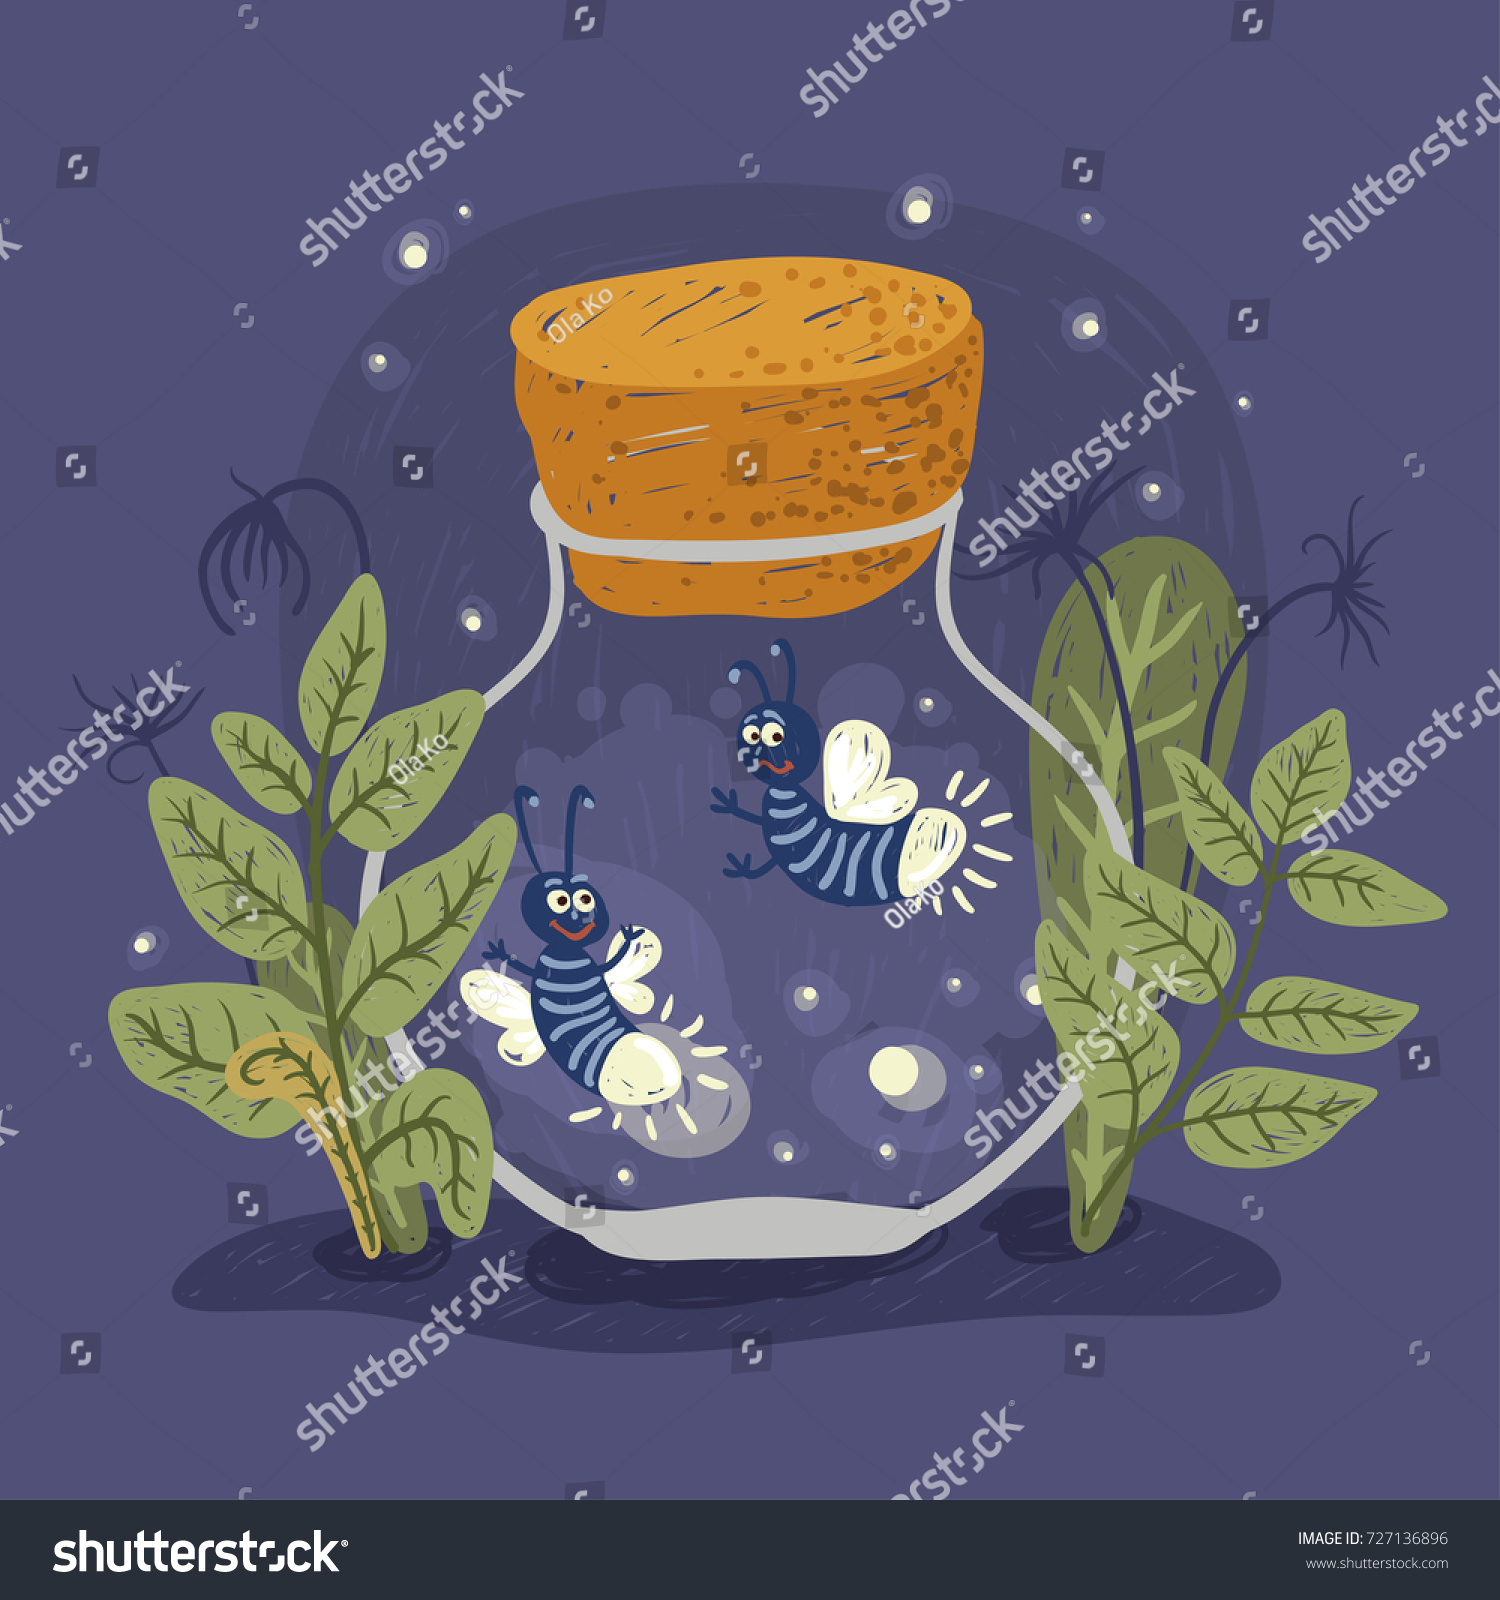 Firefly Jar Art Cartoon Firefly Jar Vector Illustration Stock Vector Royalty Free